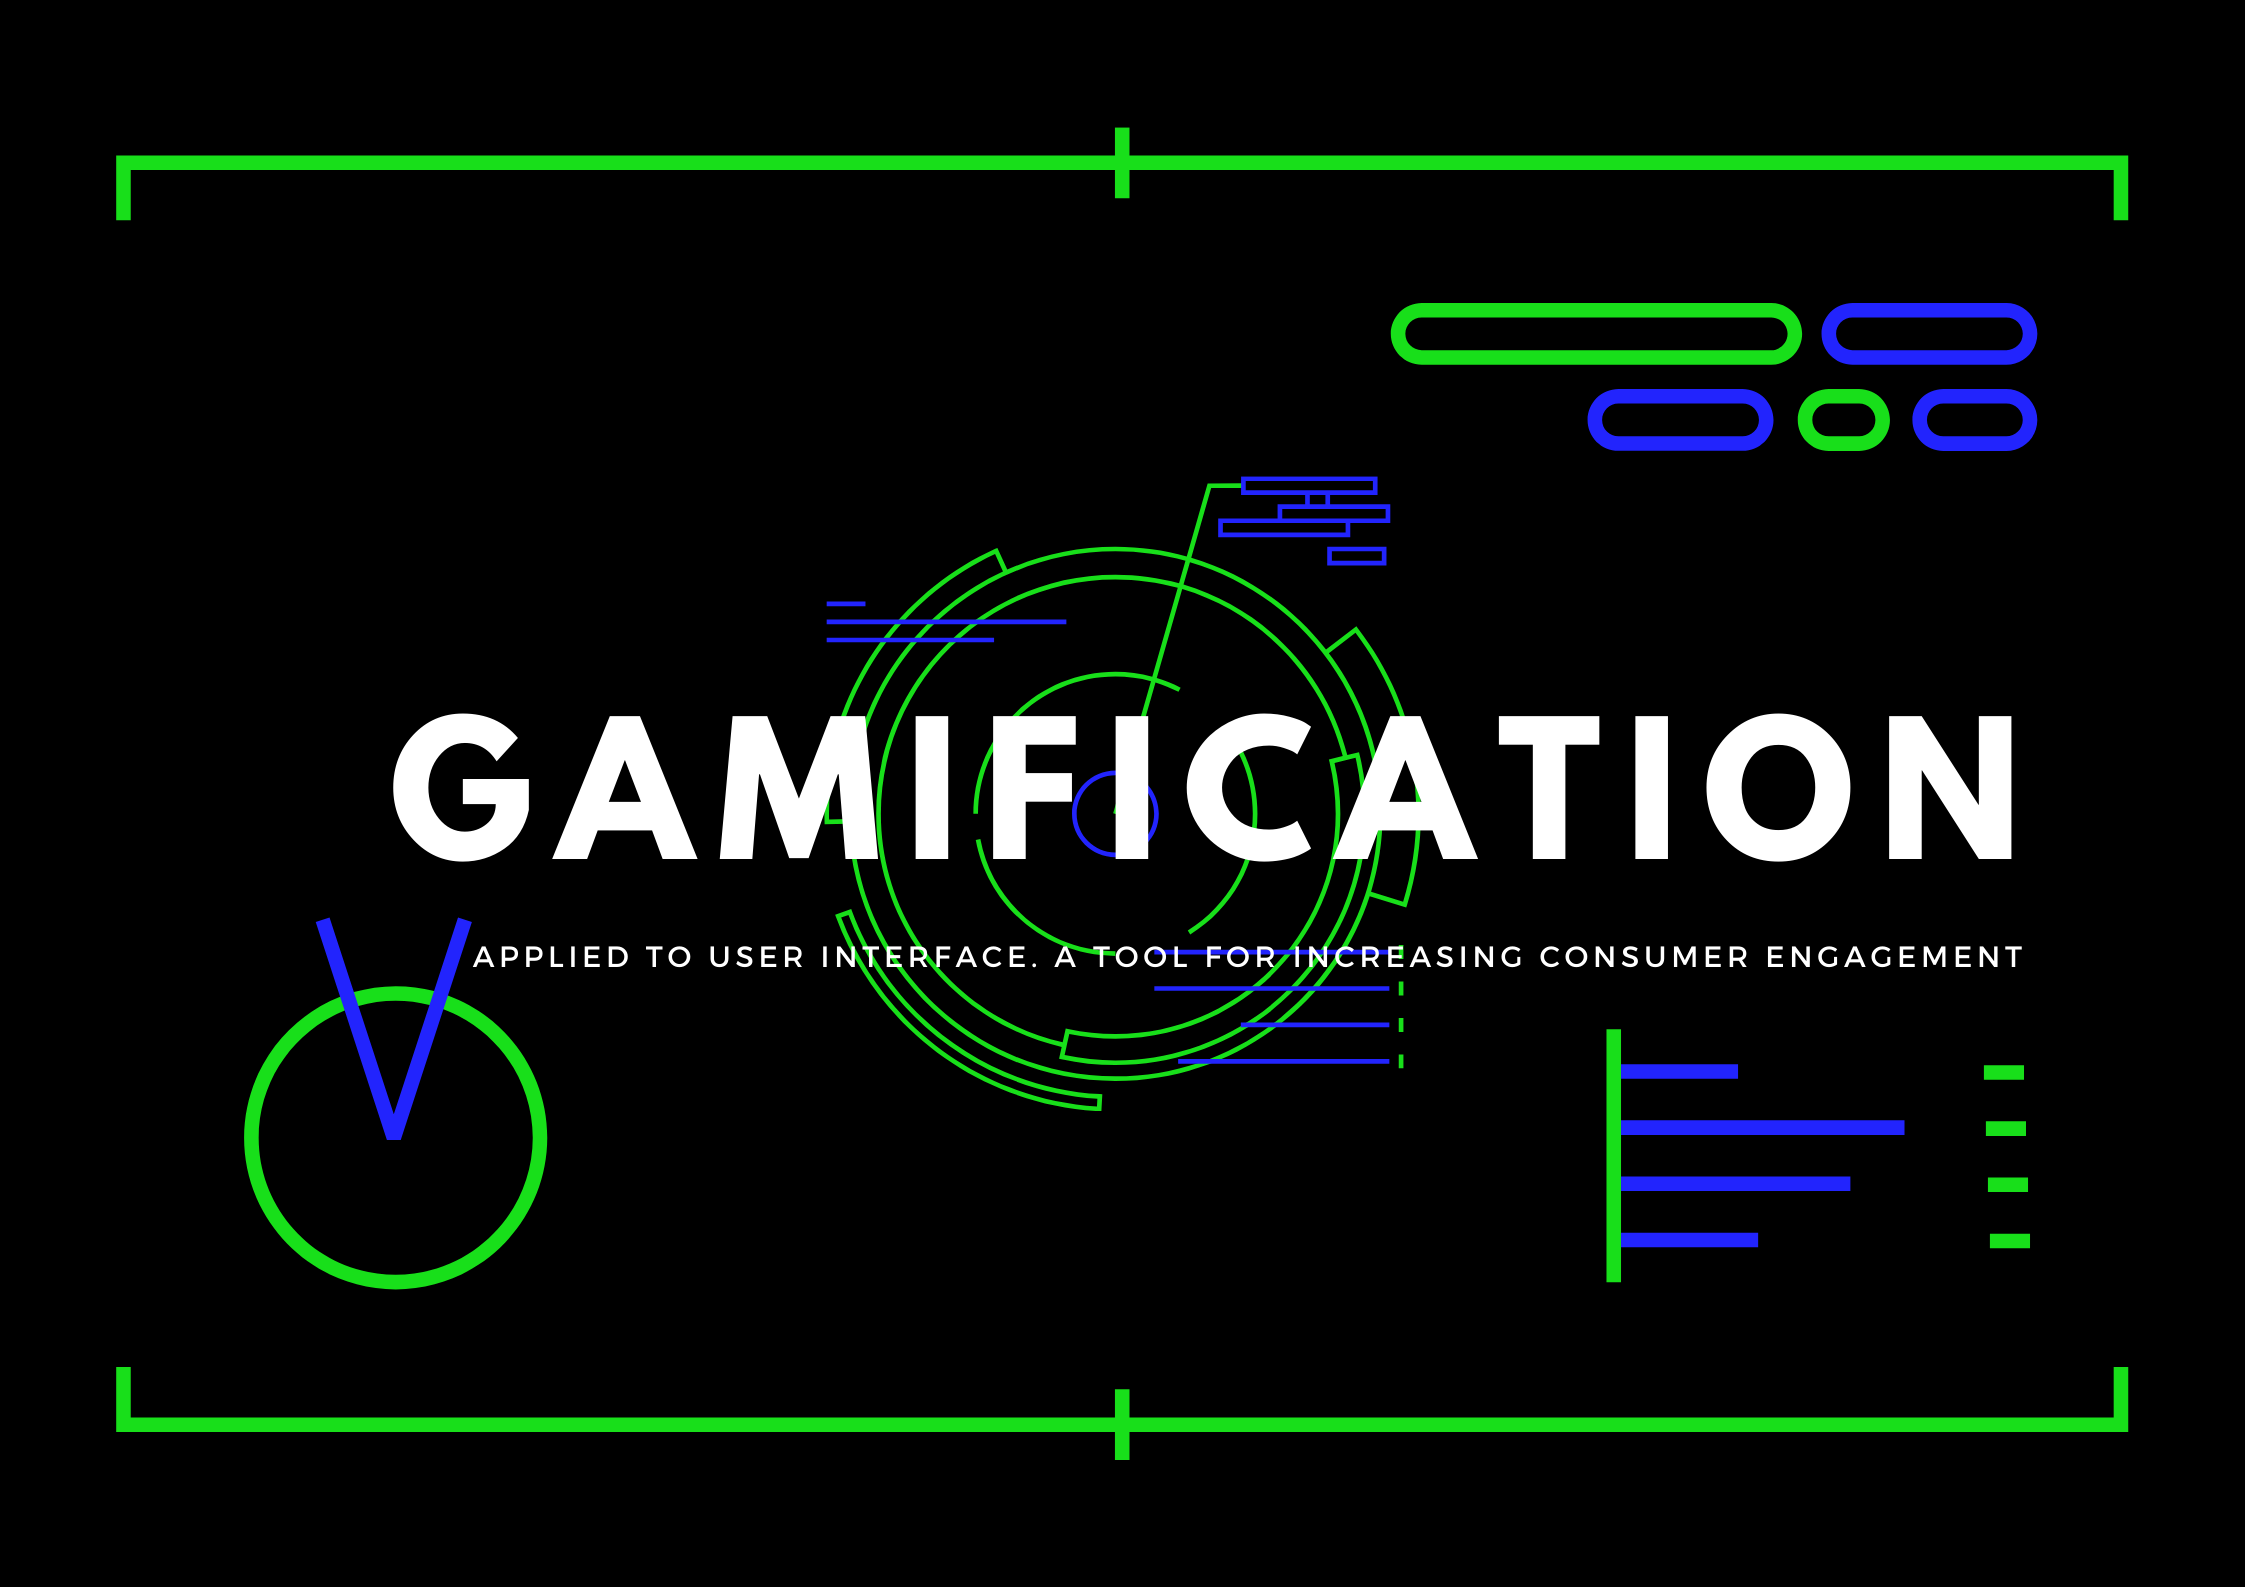 Gamification Applied to User Interface. A Tool for Increasing Consumer Engagement